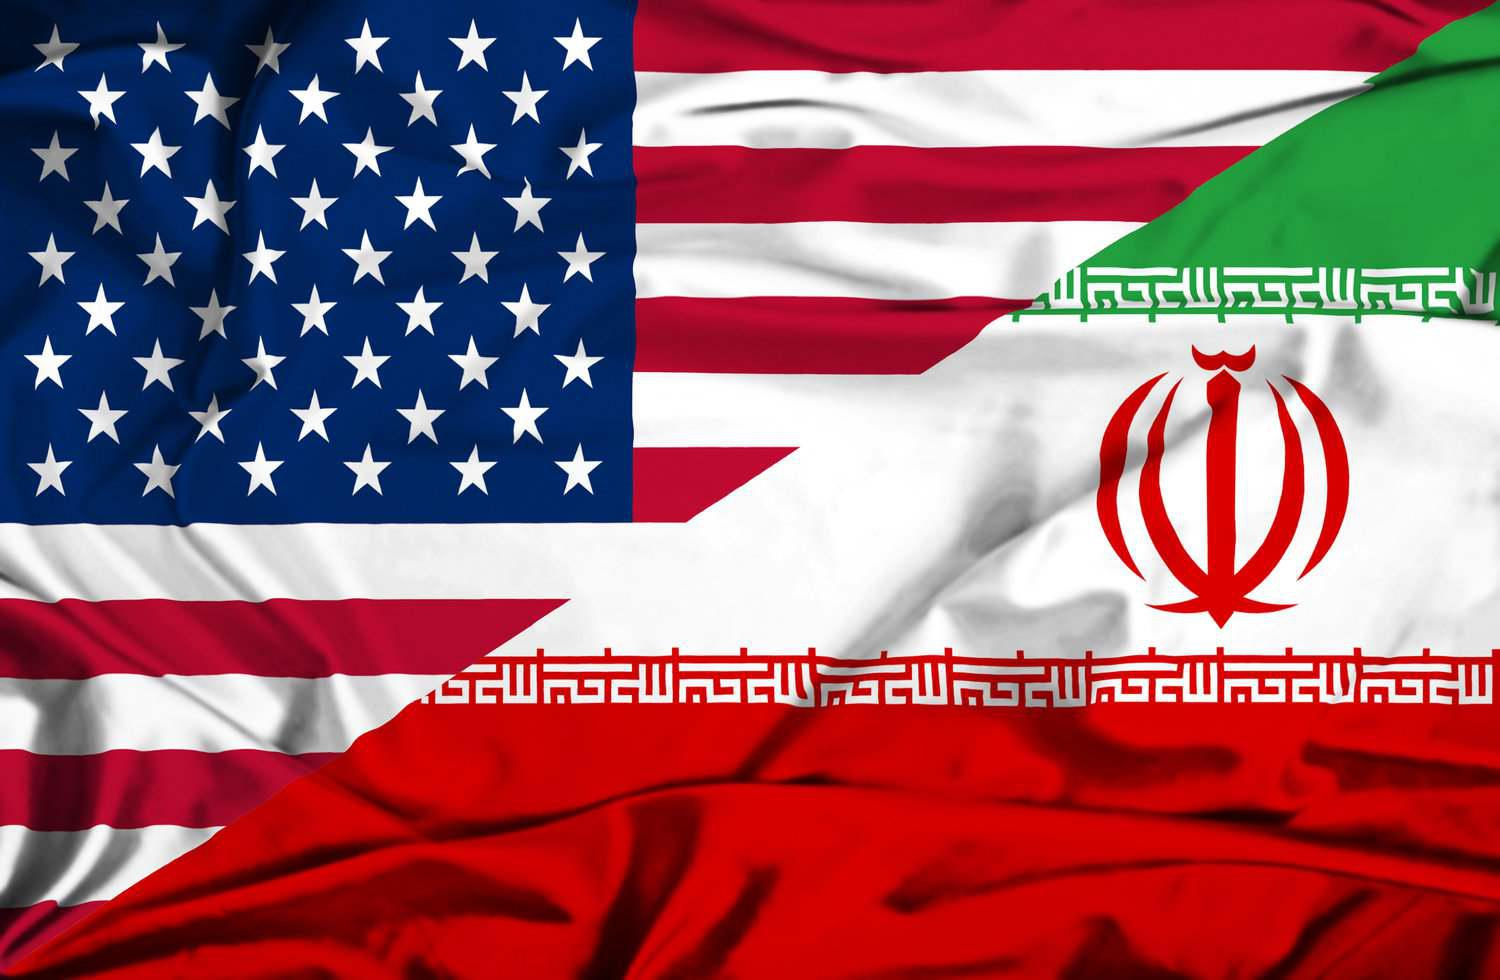 ifmat - OFAC publishes additional Iran-Related FAQs related to Executive Order 13902